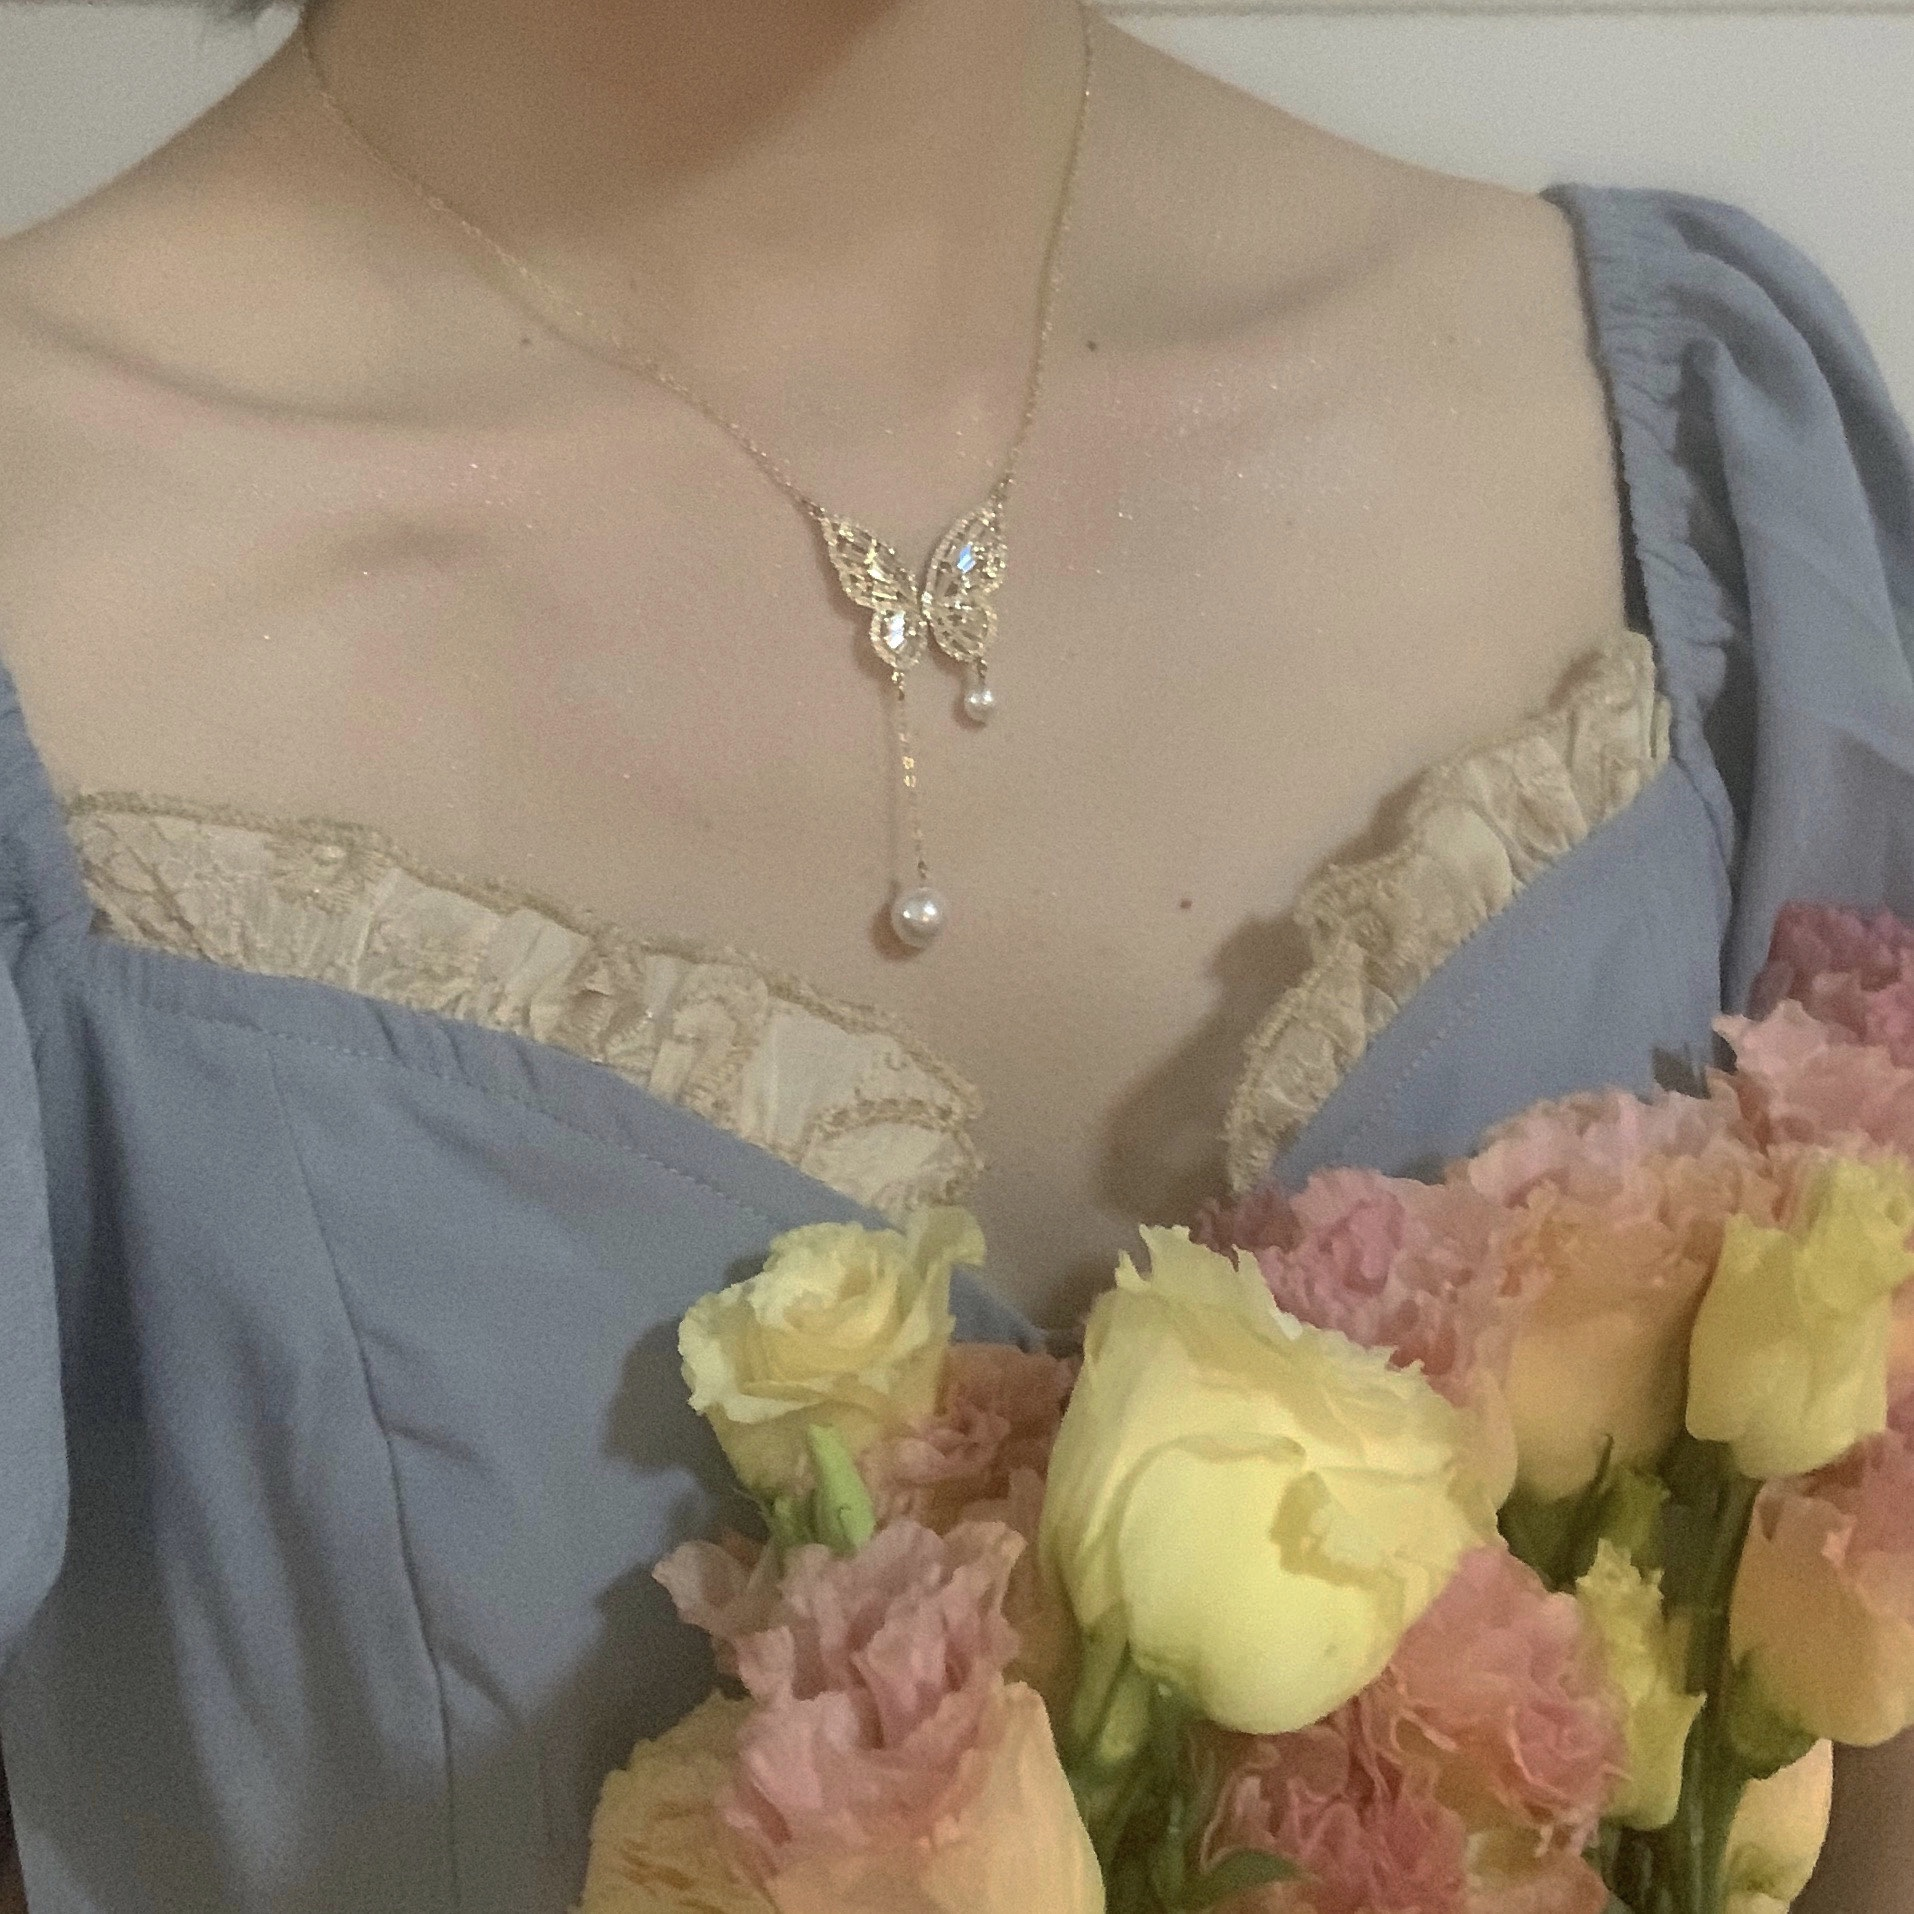 Korea New Fashion Jewelry Exquisite Copper Inlaid Zircon Butterfly Pendant Necklace Elegant Pearl Female Clavicle Necklace